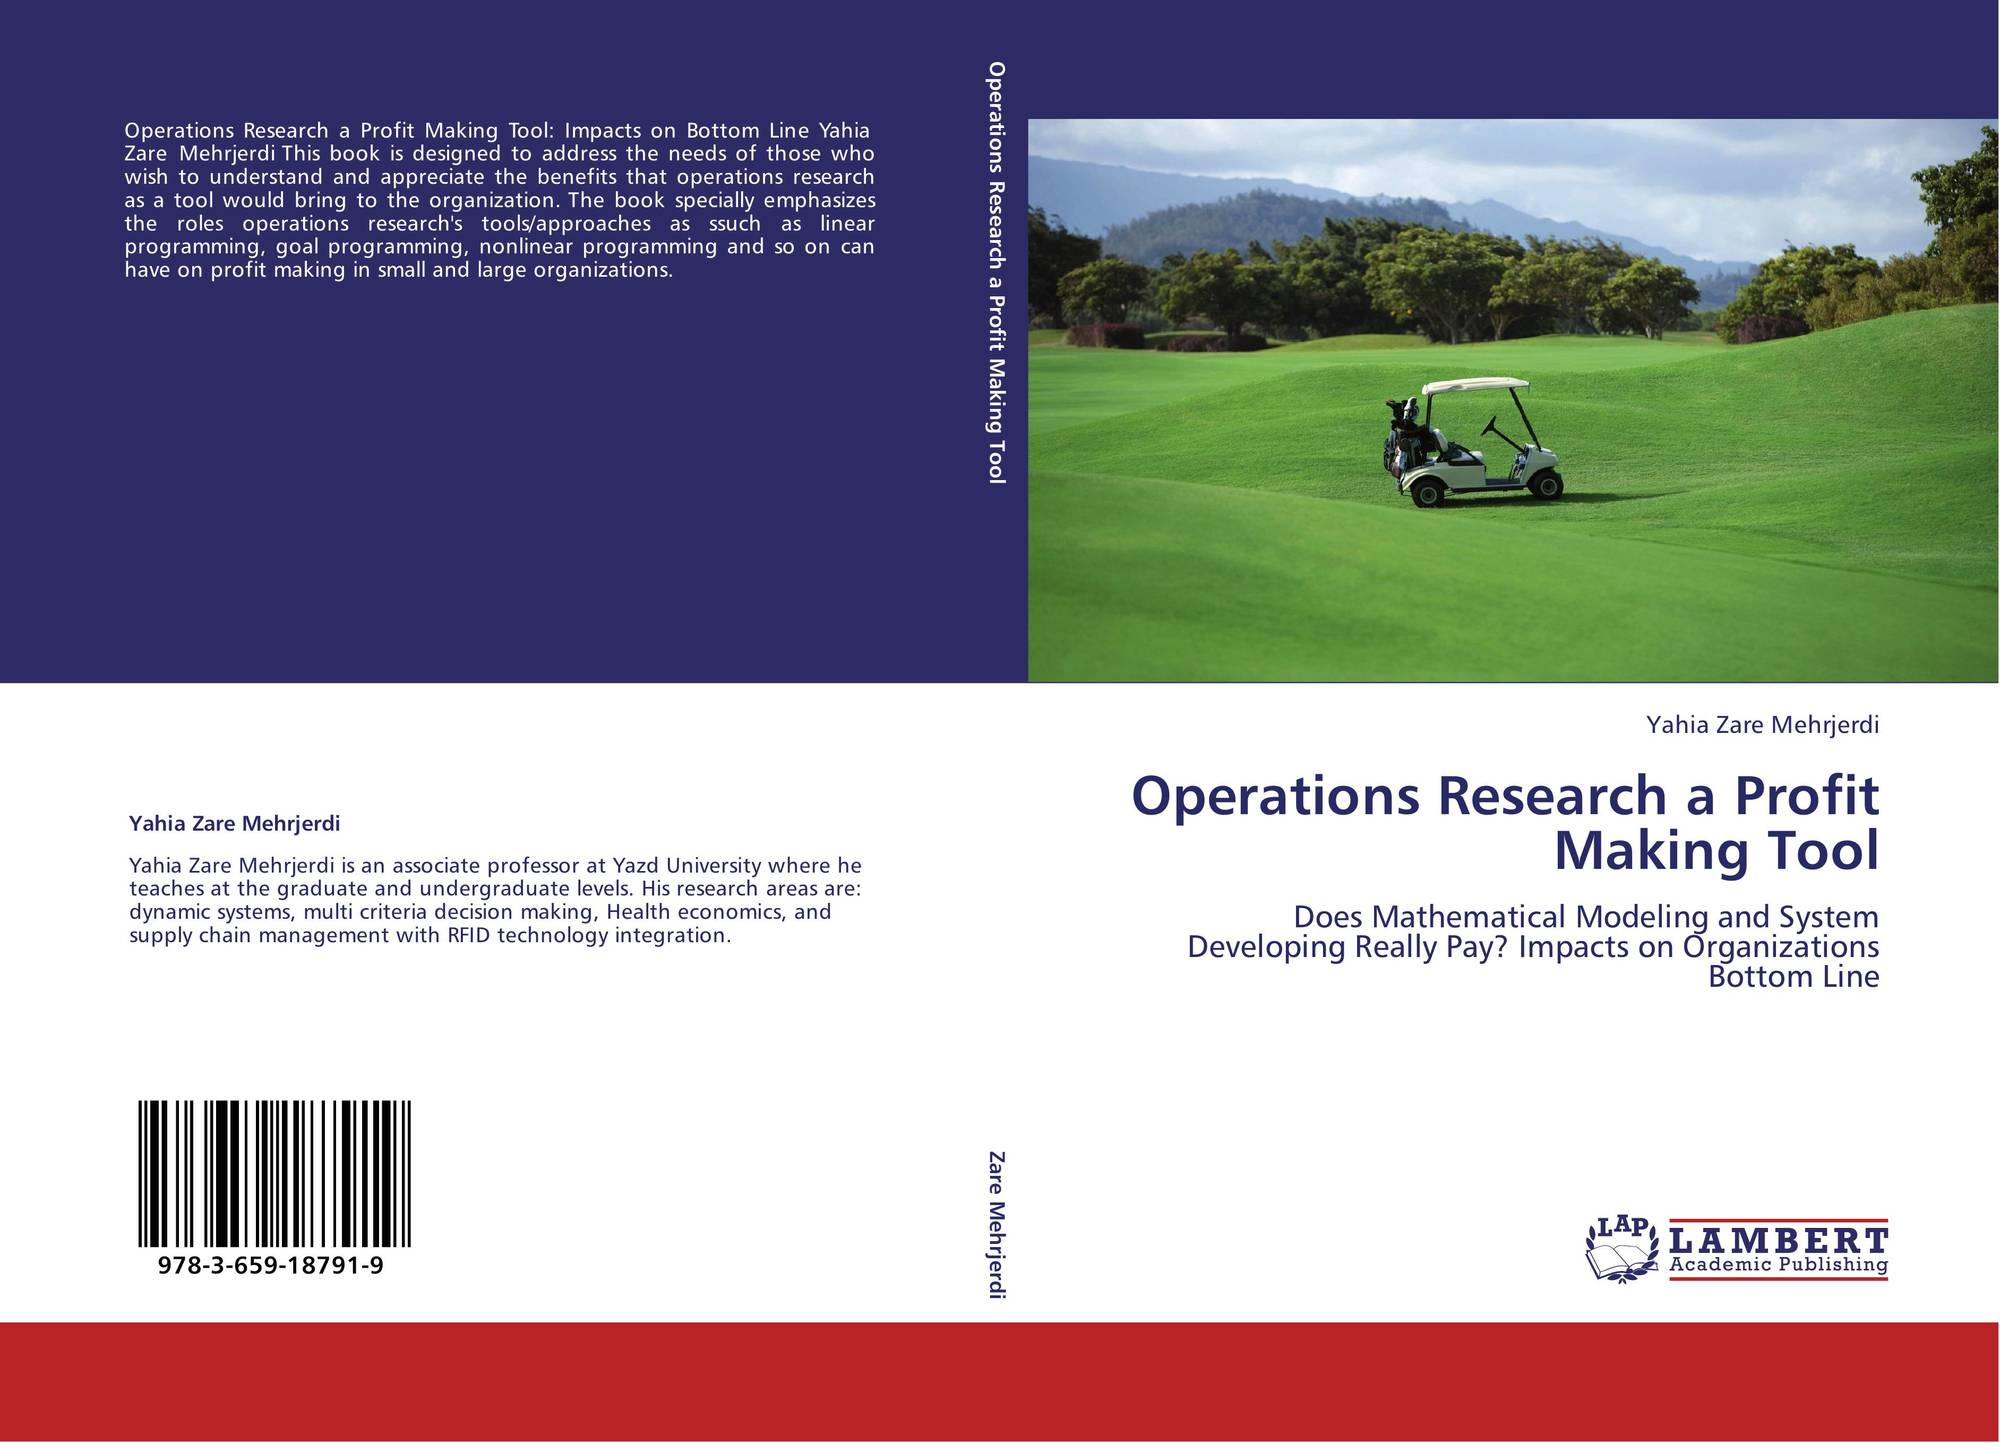 Operations Research a Profit Making Tool, 978-3-659-18791-9